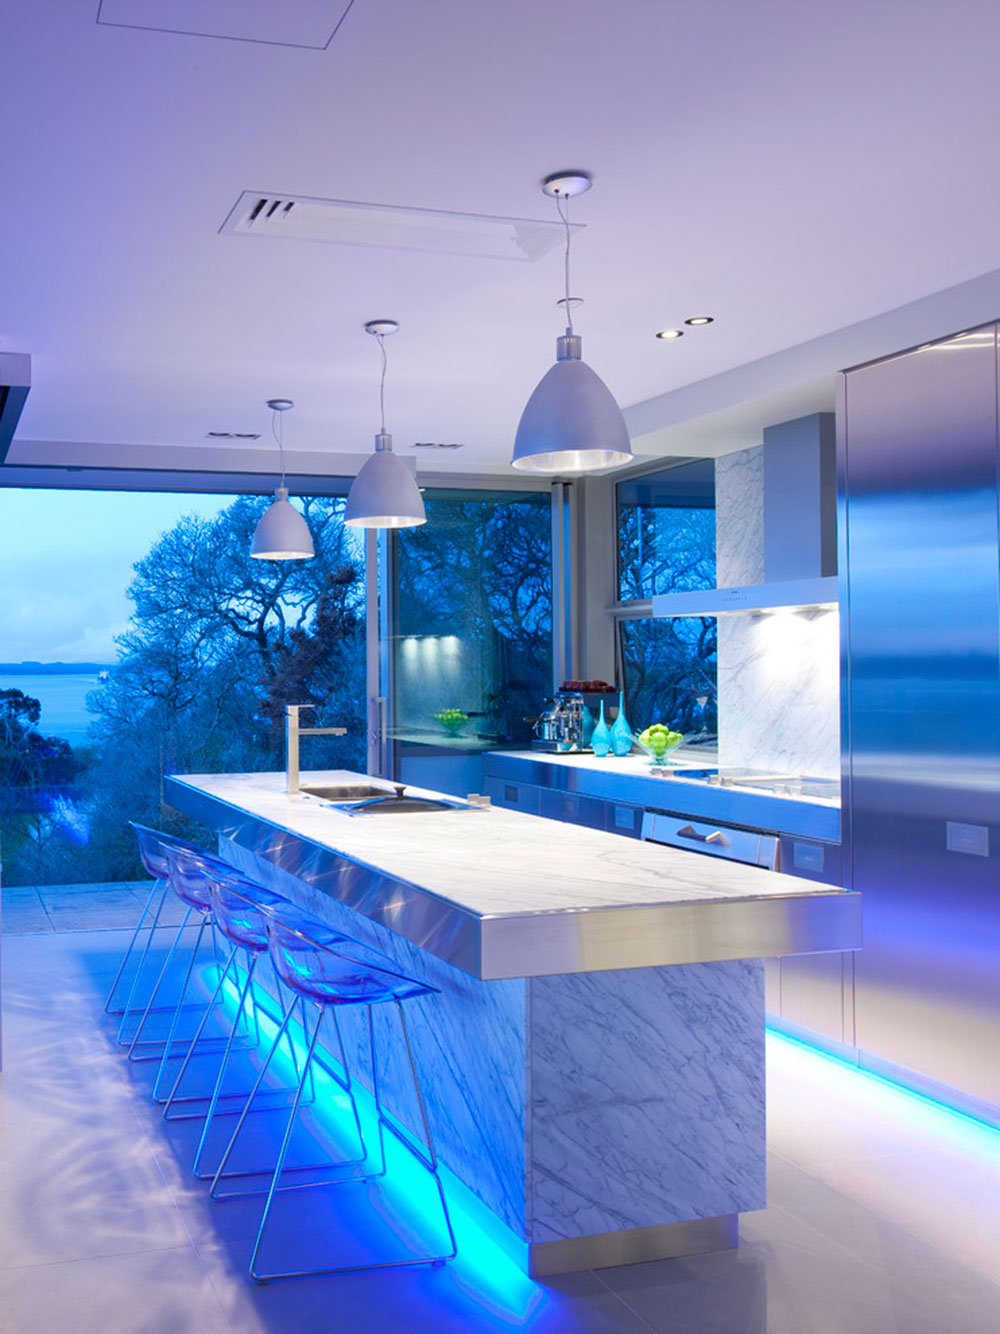 advantages of using led lights for home interior led lights for kitchen Advantages Of Using Led Lights For Home Interior 1